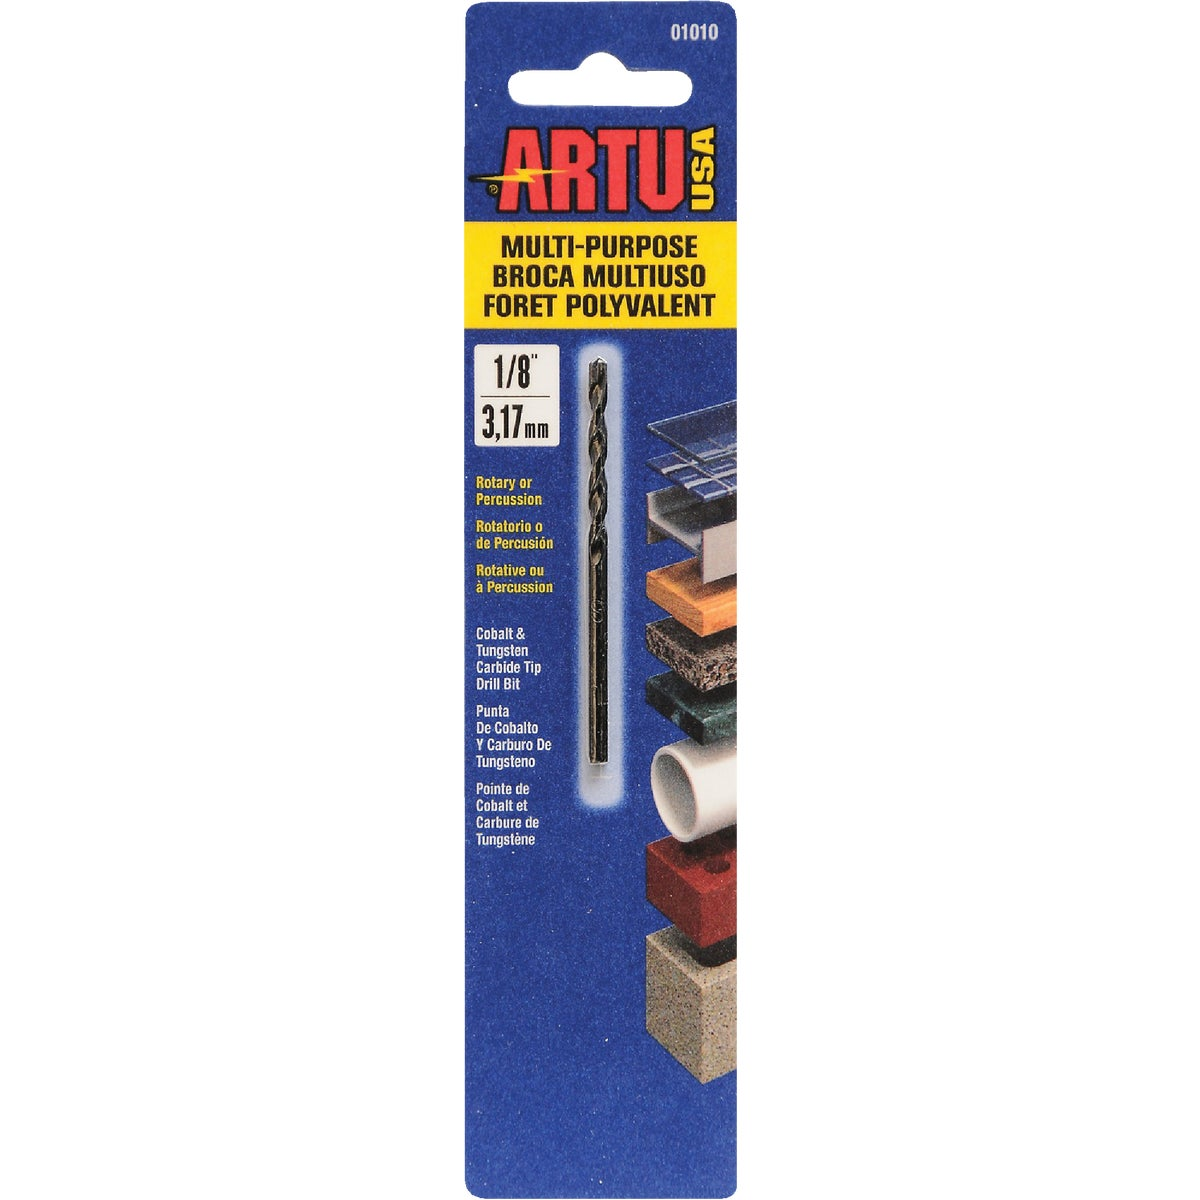 "1/8"" MULTIPURPOSE BIT - 01010 by Artu Usa Inc"